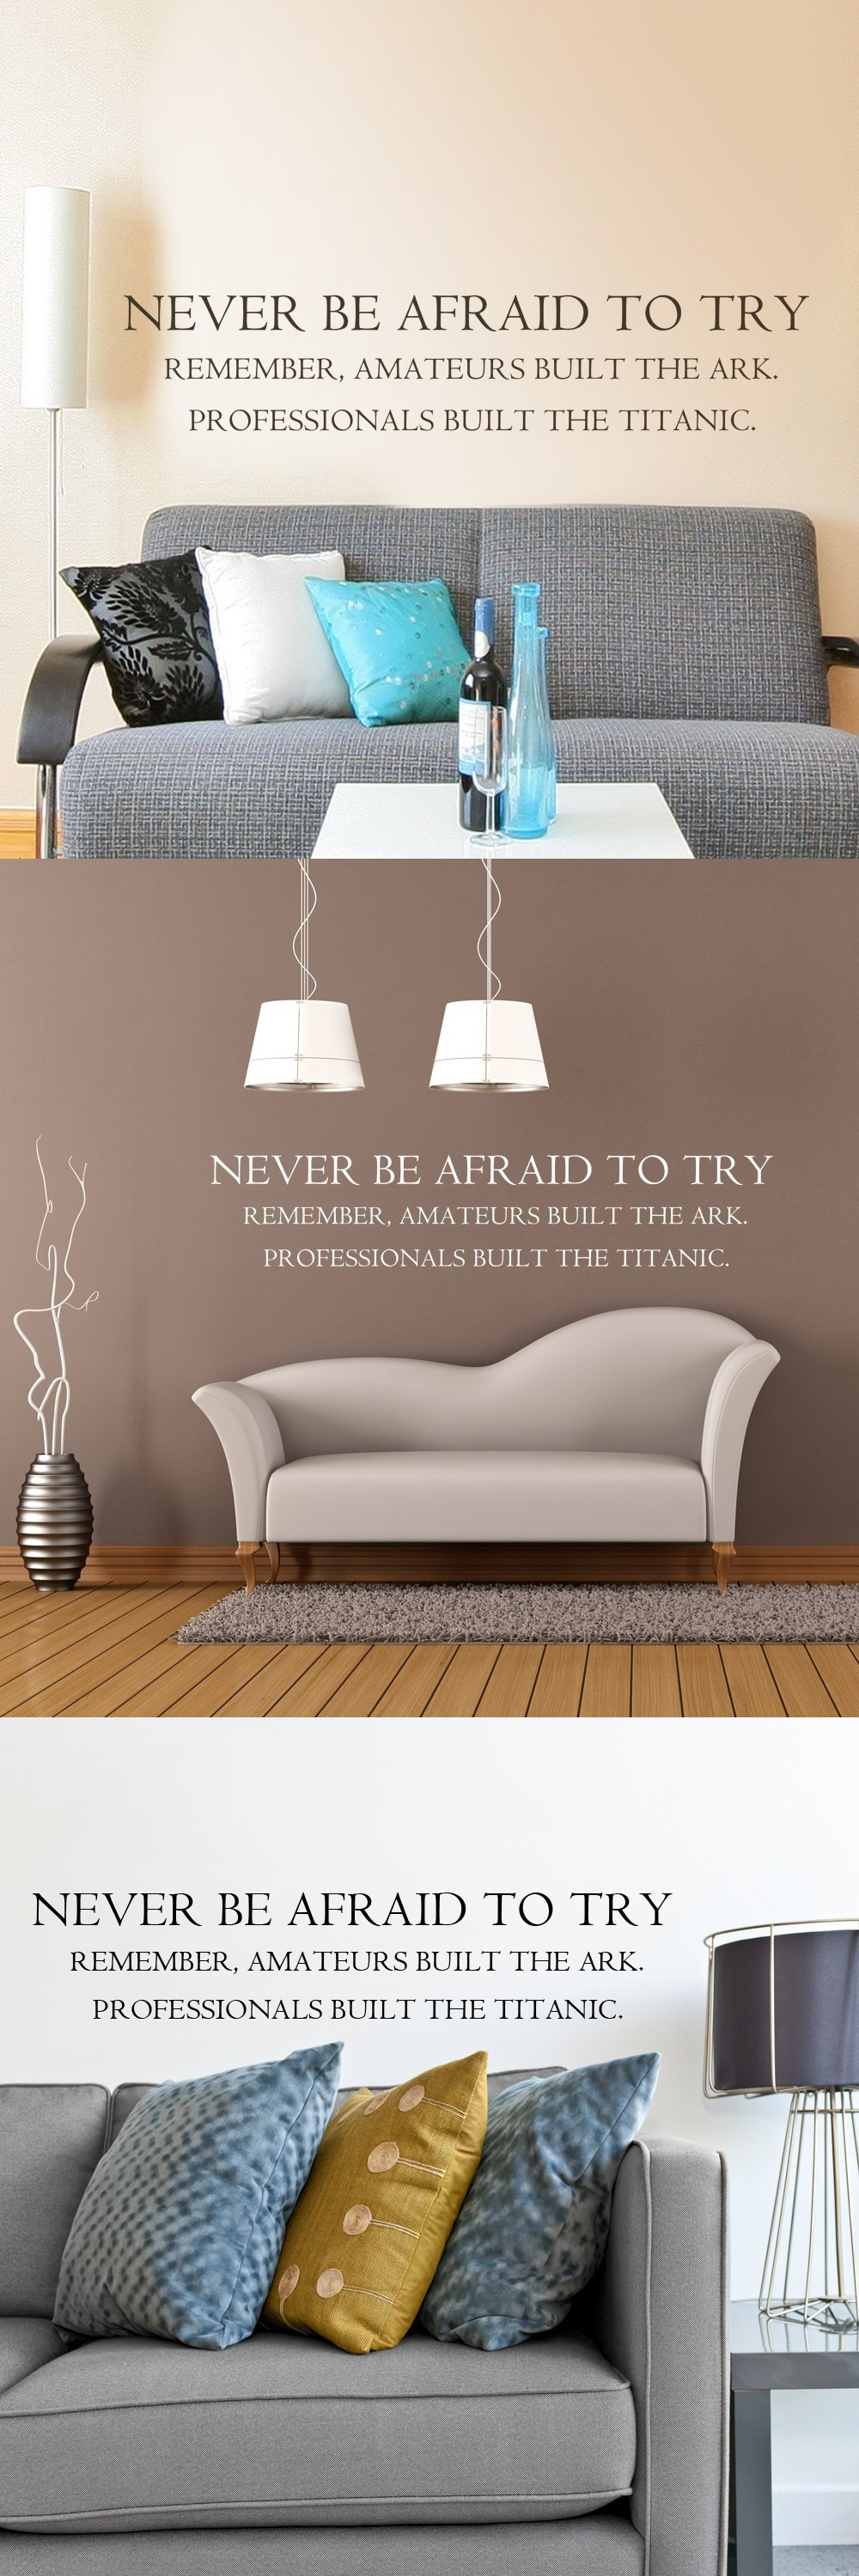 Professionals Built Titanic Office Home Decor Inspirational Wall Decal Art & Never Be Afraid To Try. Professionals Built Titanic Office Home ...